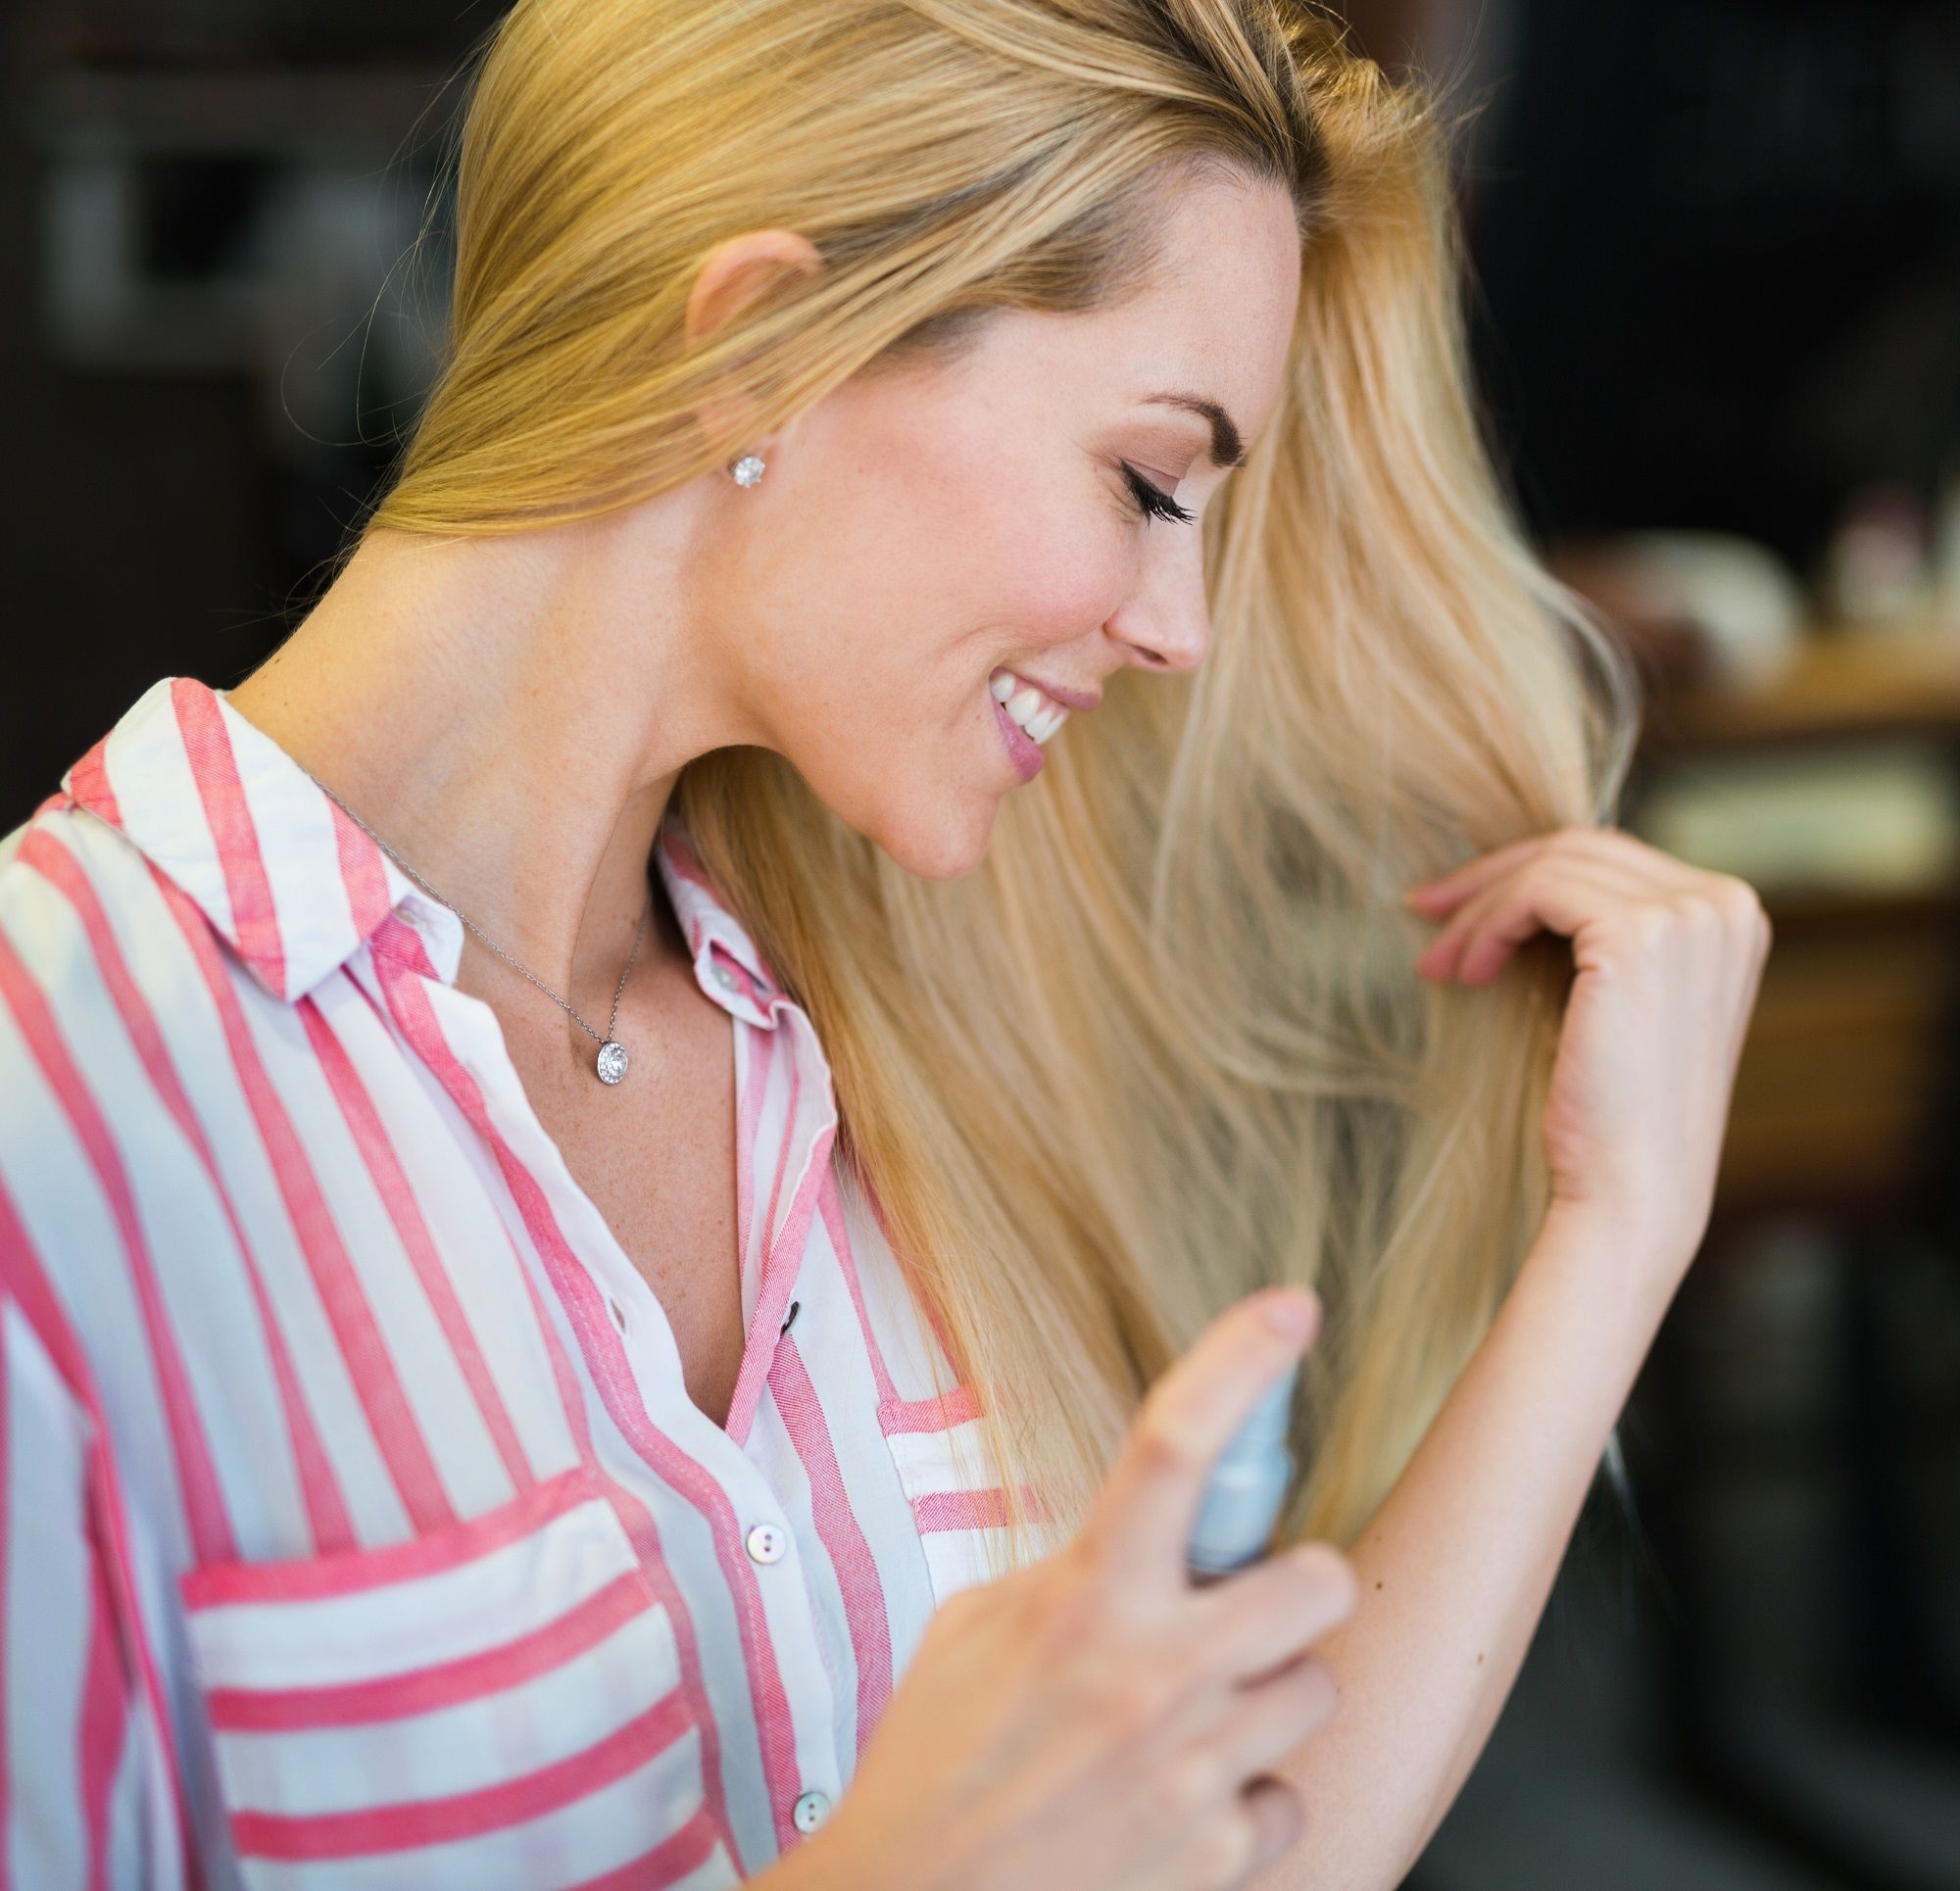 Hair care tips for traveling: Closeup shot of a woman with long blonde hair spraying her hair and wearing a striped blouse